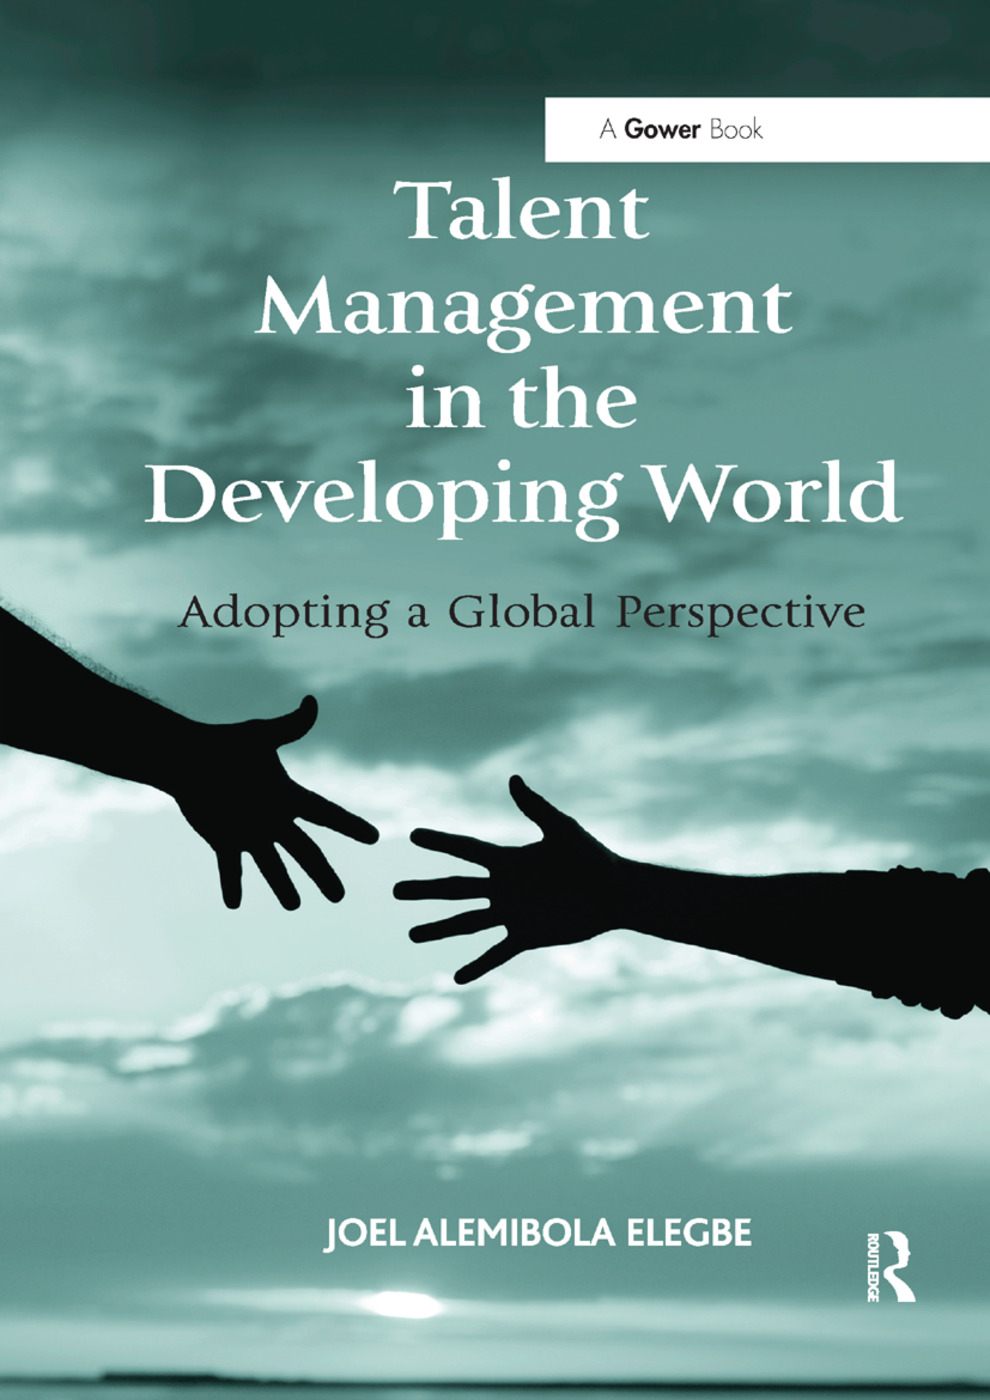 Talent Management in the Developing World: Adopting a Global Perspective book cover